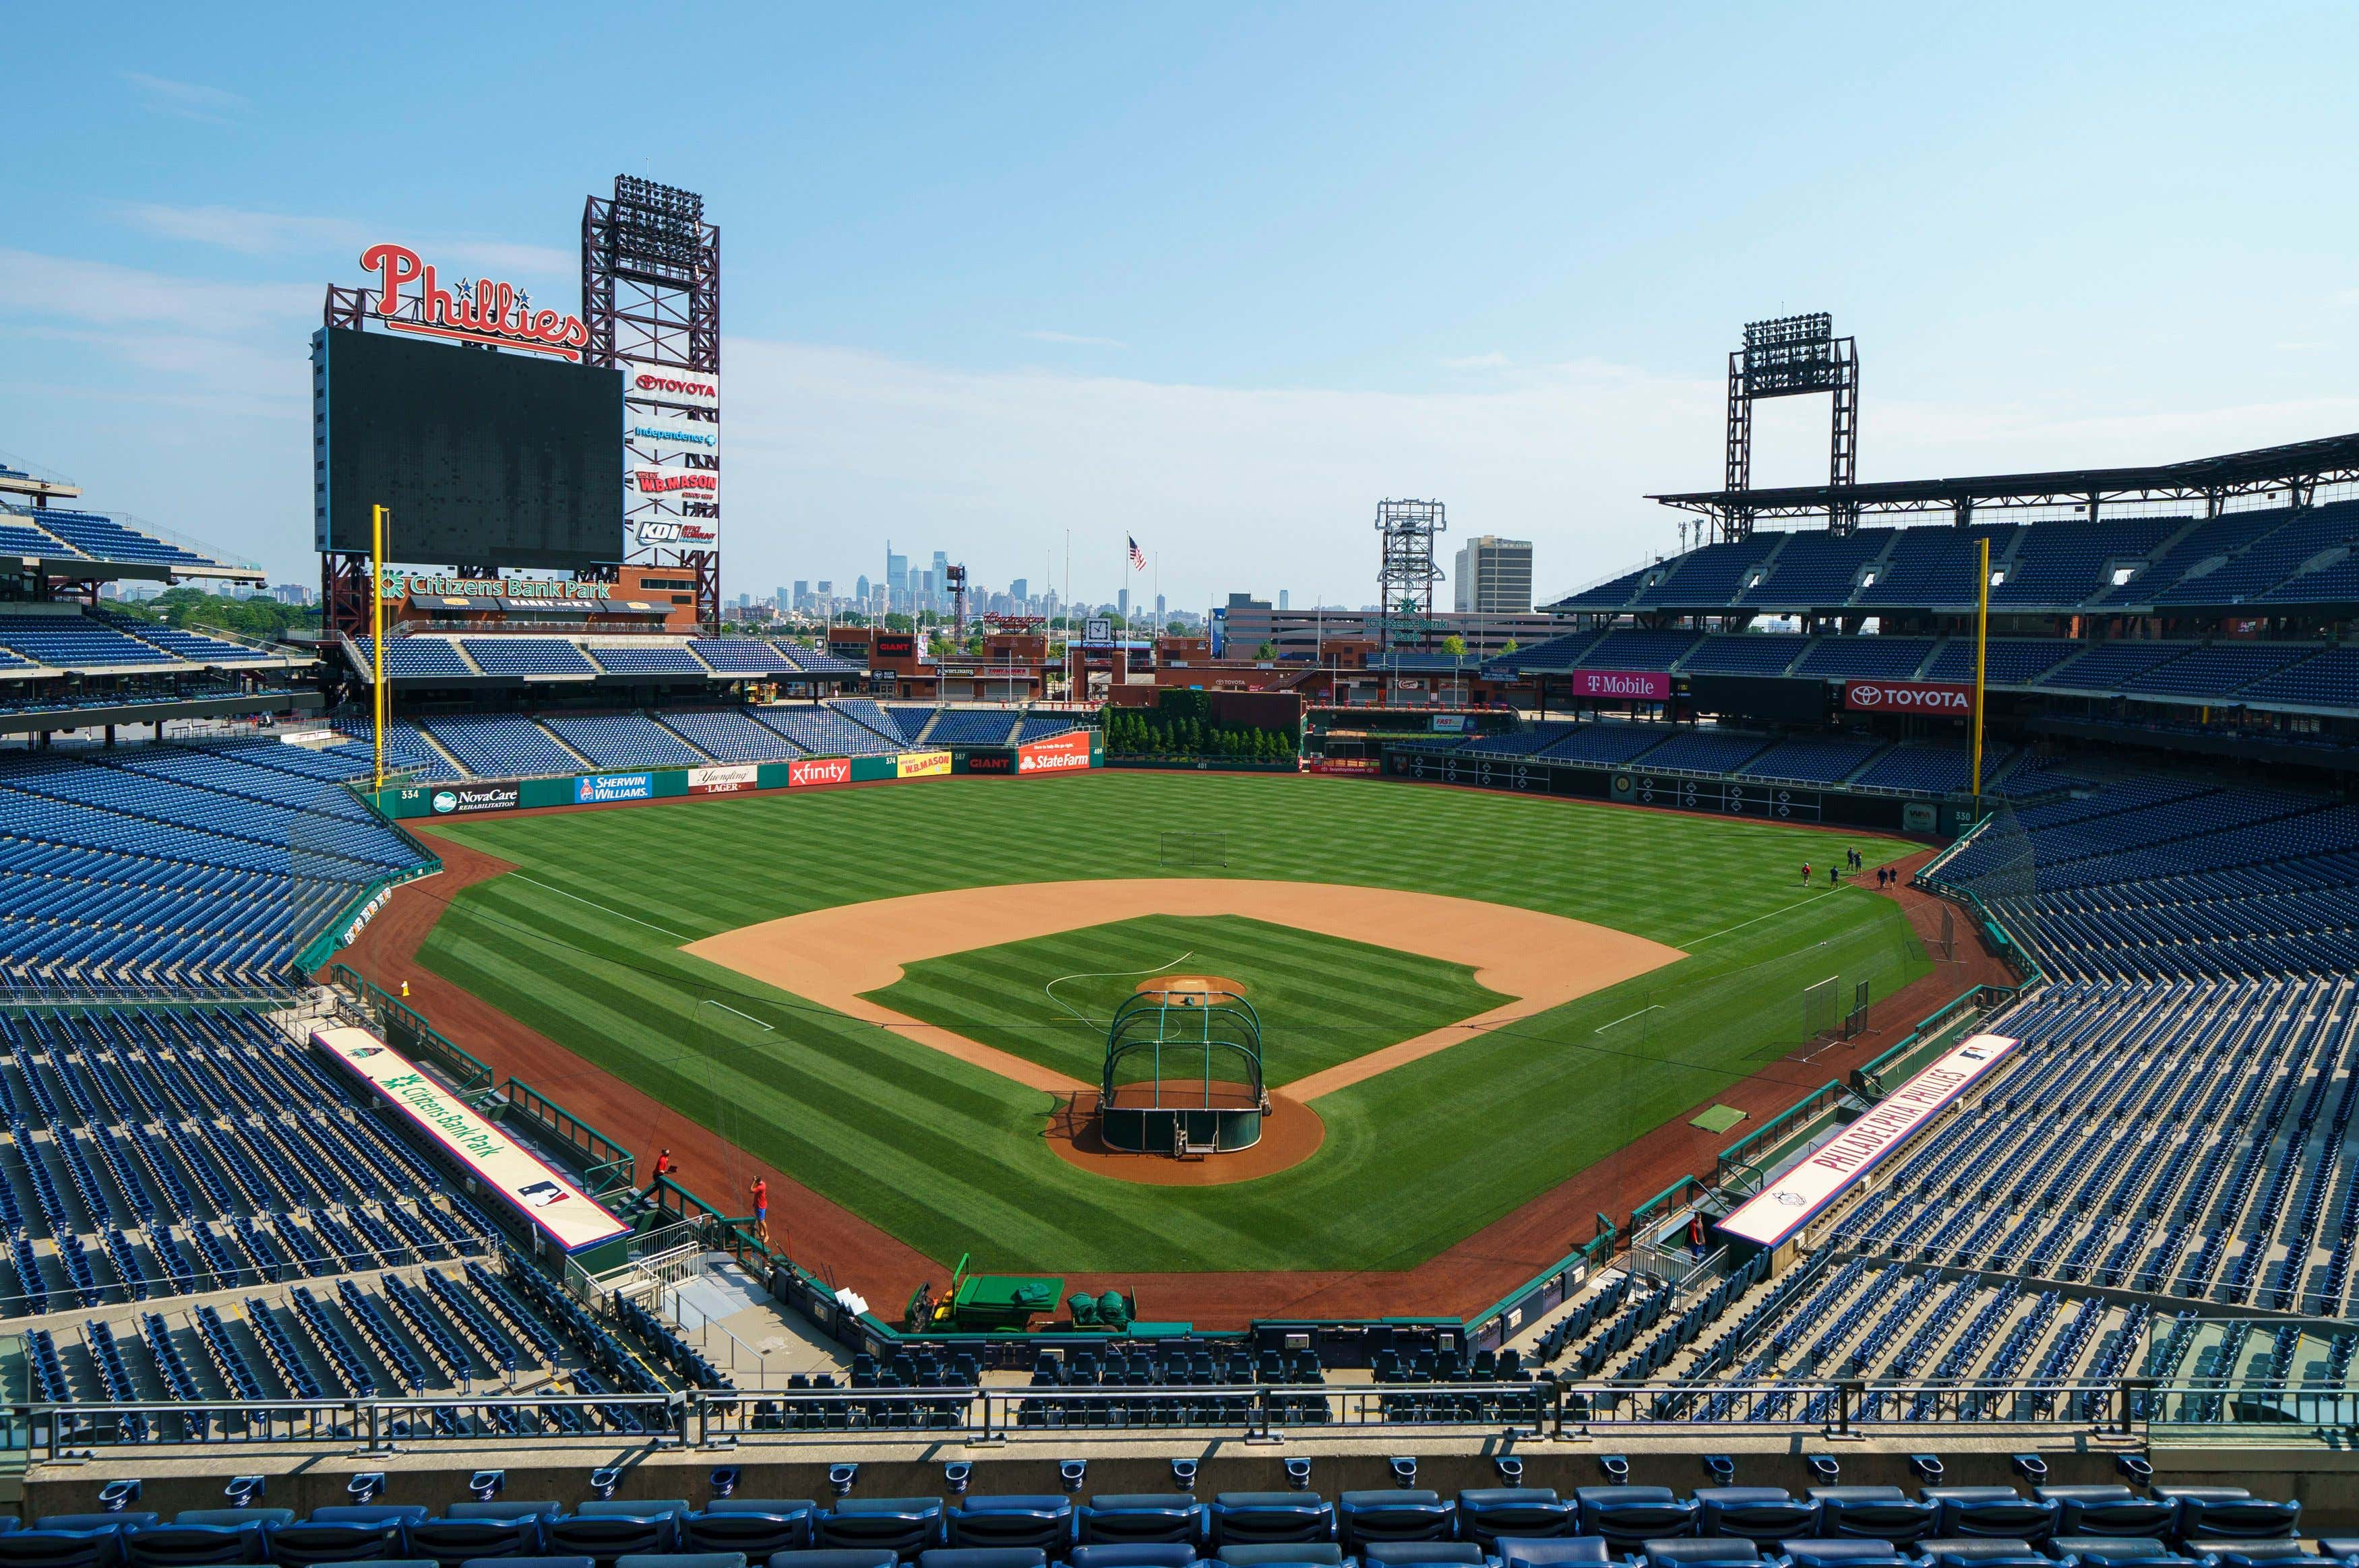 Citizens Bank Park, home of baseball's Philadelphia Phillies, is shown before a training session, in Philadelphia